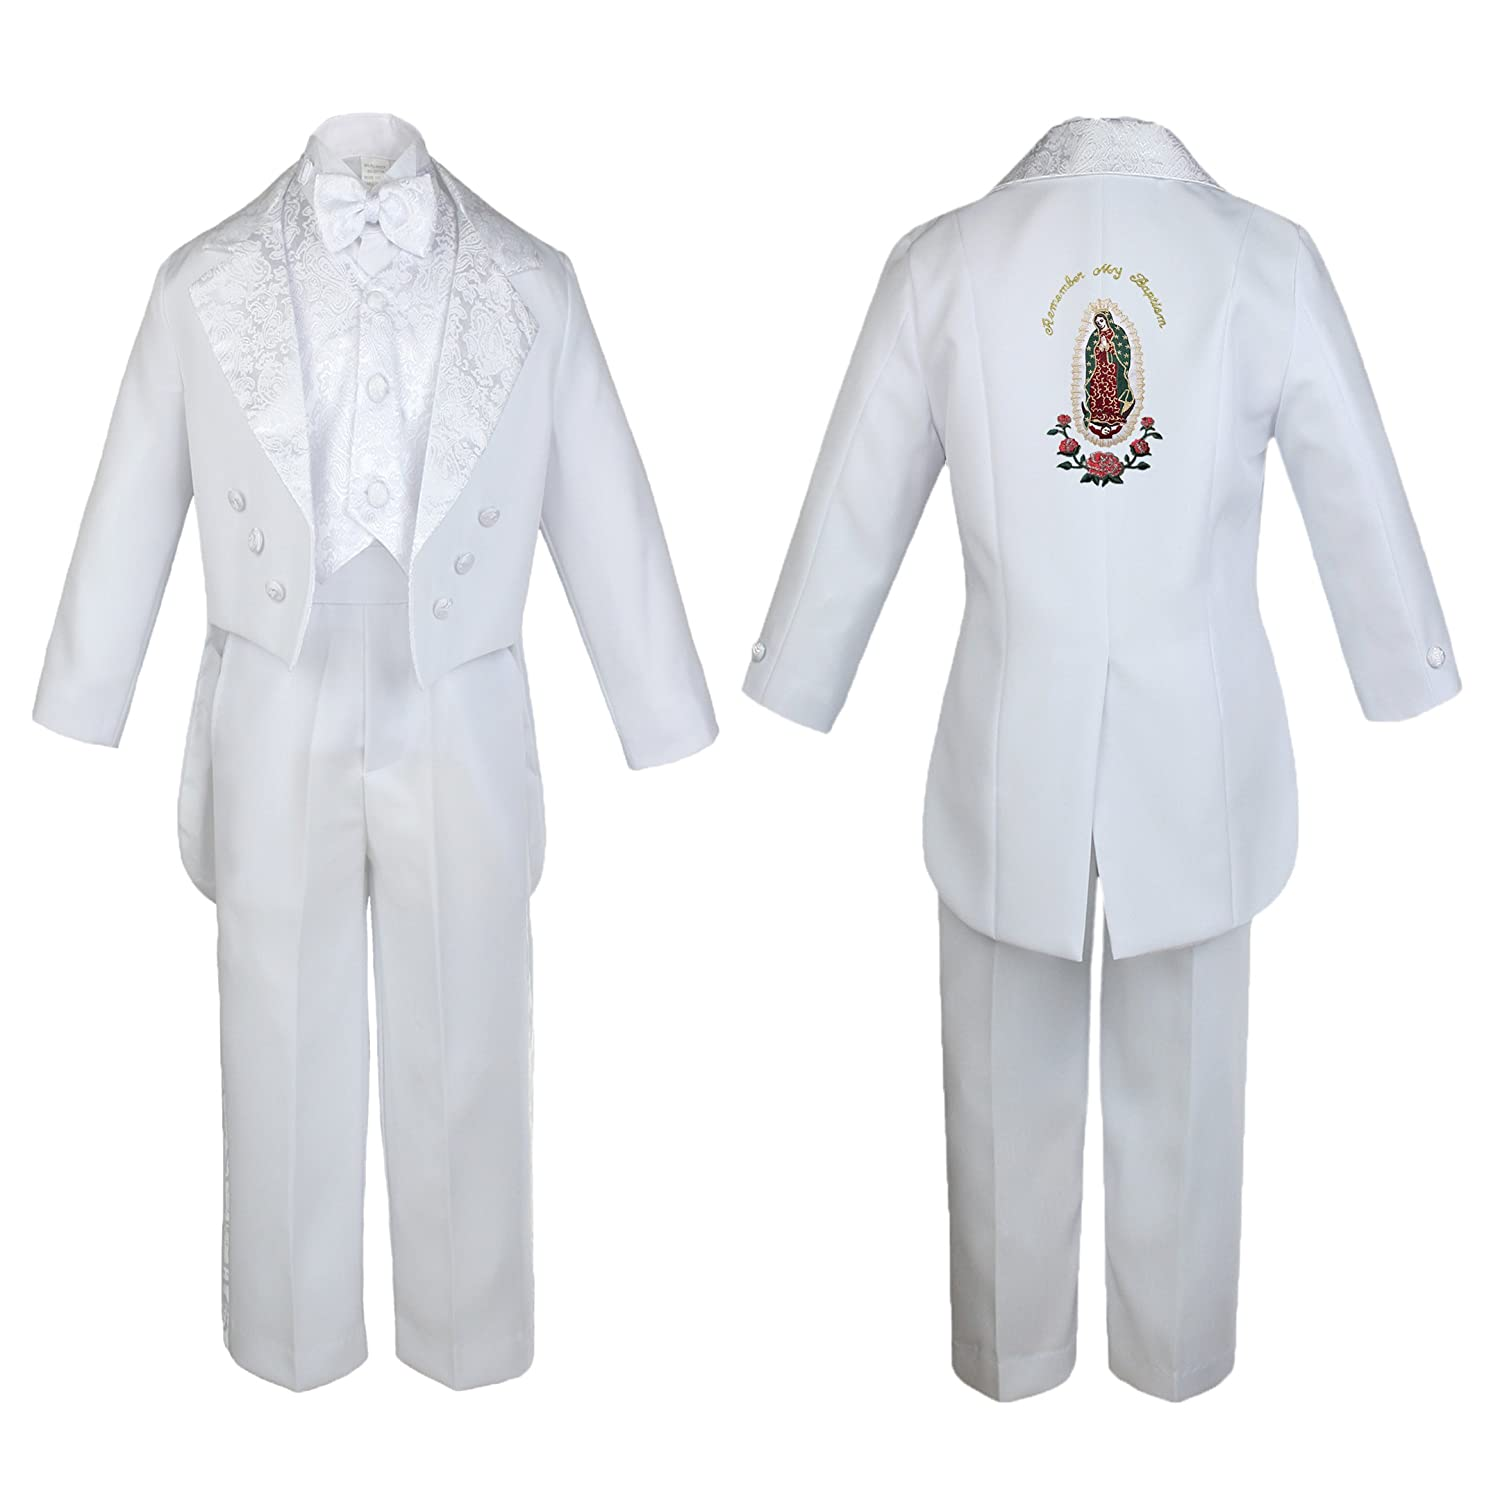 New Baby Boy Christening Formal White Tail Suit Gold Virgin Mary on Back SM-20